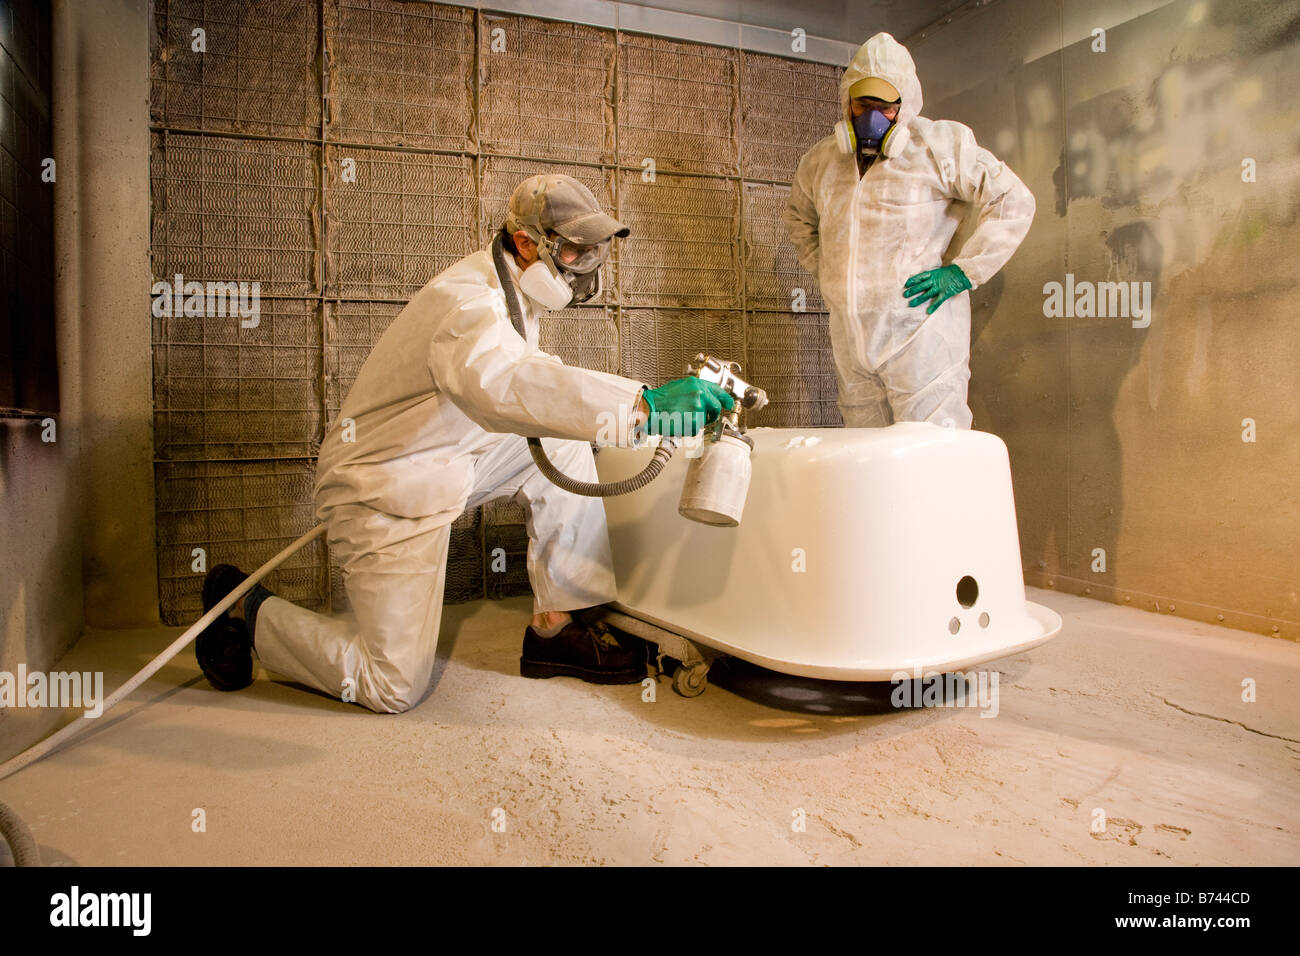 Men wearing protective gear spray painting bathtub Stock Photo ...